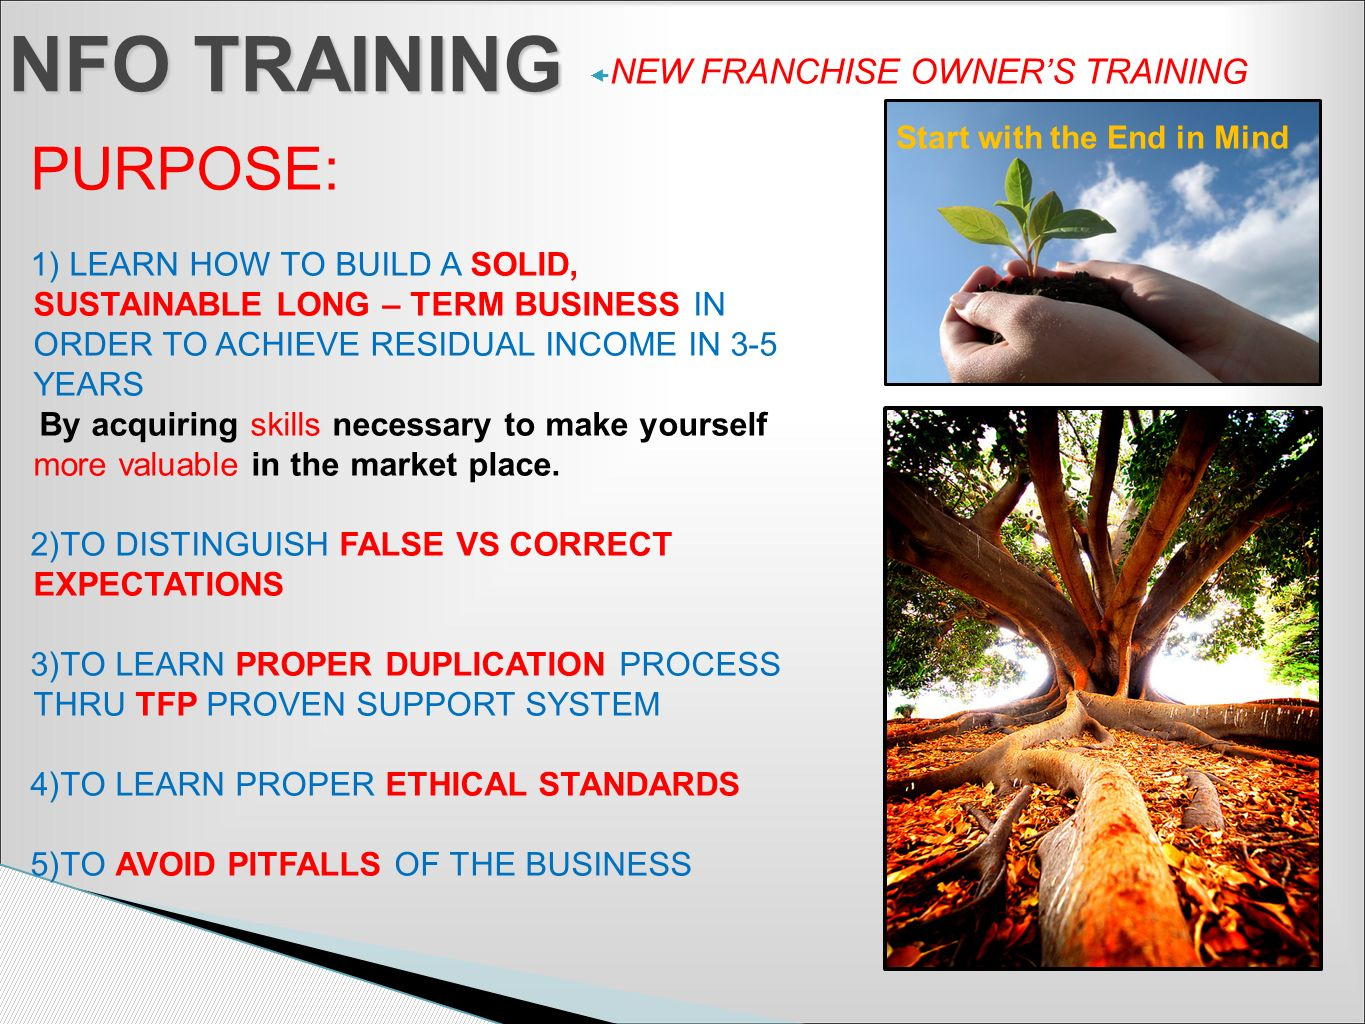 NEW FRANCHISE OWNERS TRAINING NFO TRAINING PURPOSE: 1) LEARN HOW TO BUILD A SOLID, SUSTAINABLE LONG – TERM BUSINESS IN ORDER TO ACHIEVE RESIDUAL INCOM